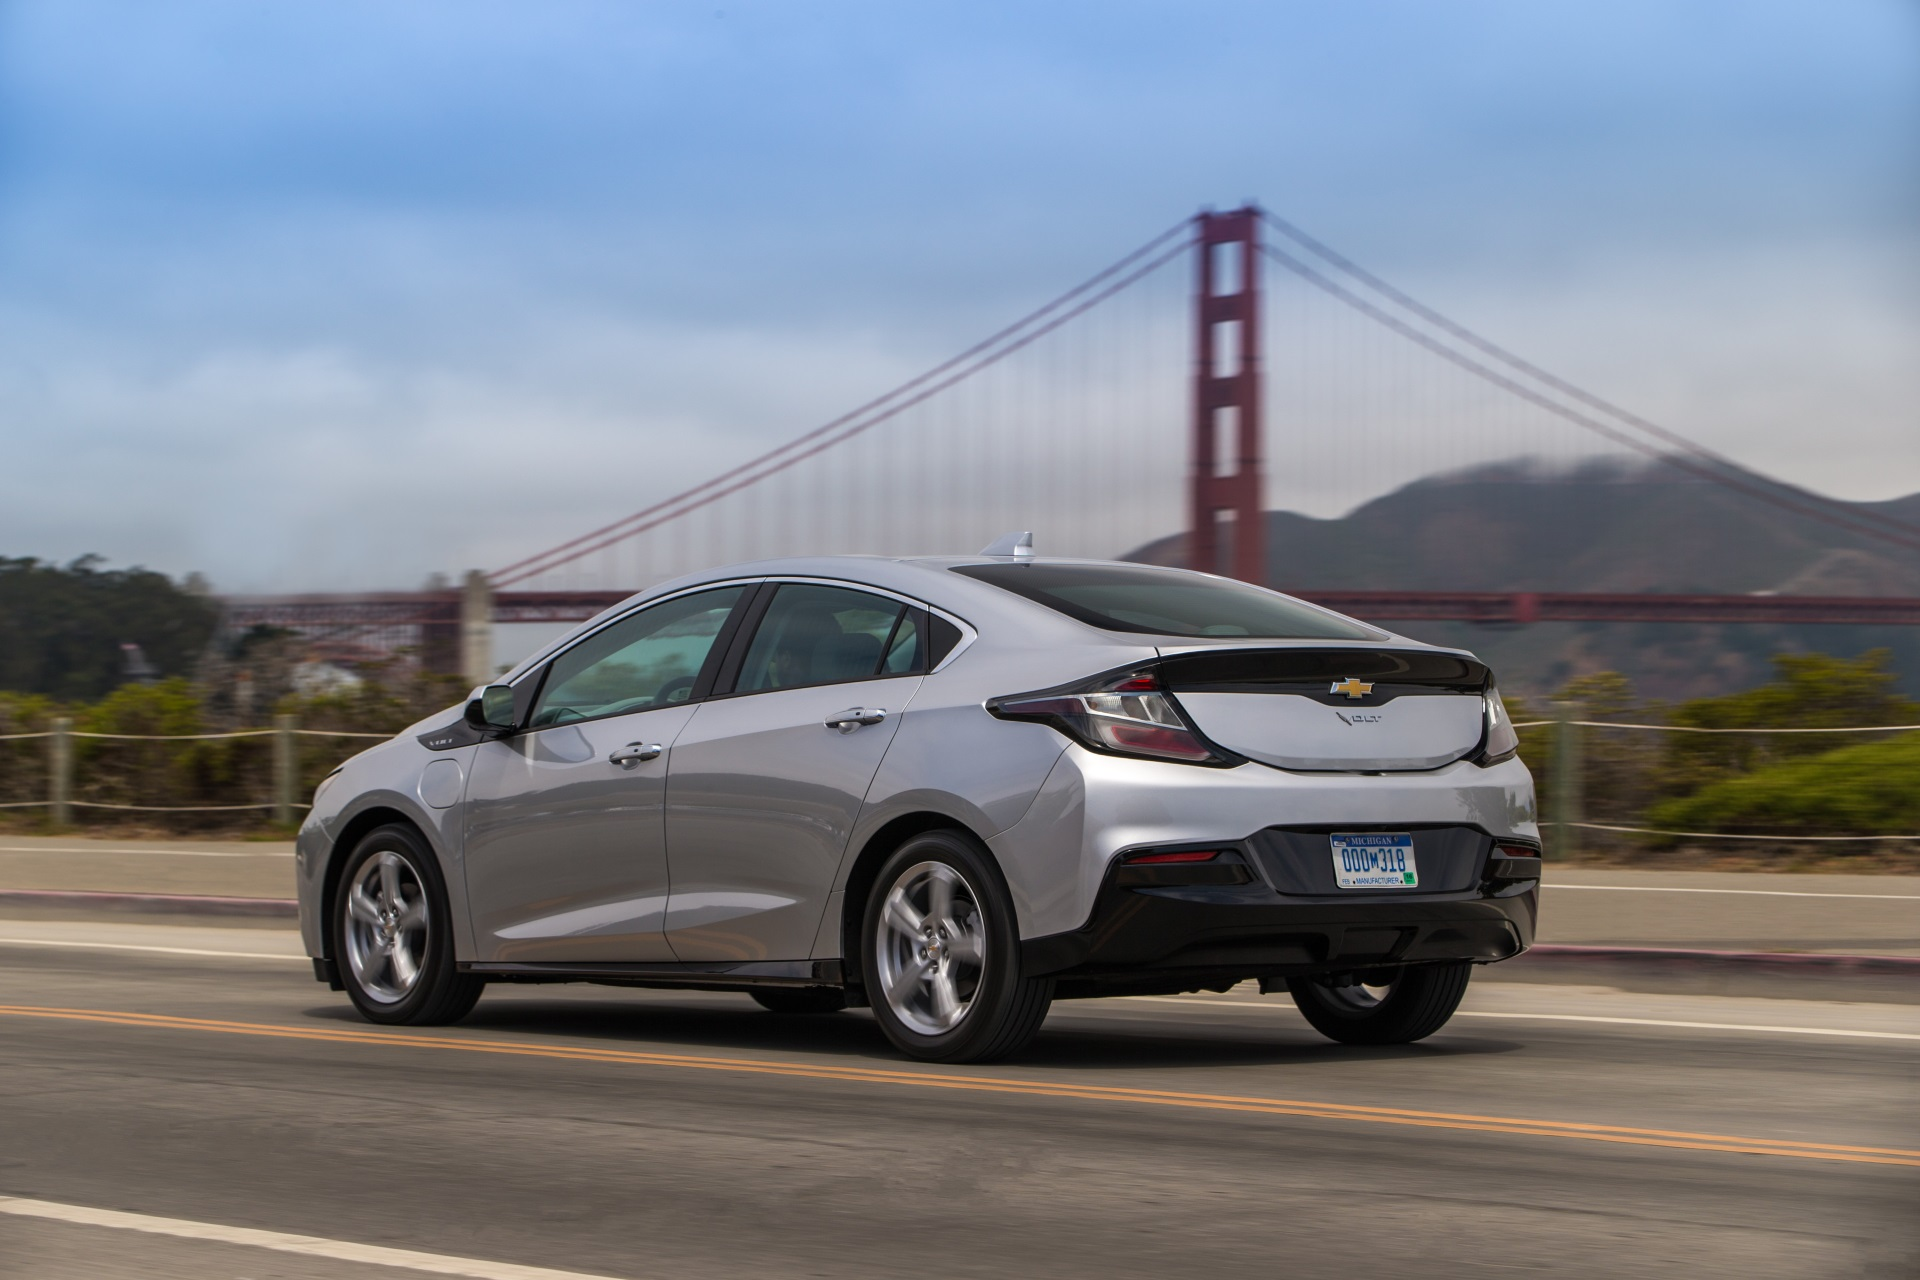 2019 Chevy Volt Specs Tesla Model 3 Orders And Faraday Future Investment Today S Car News